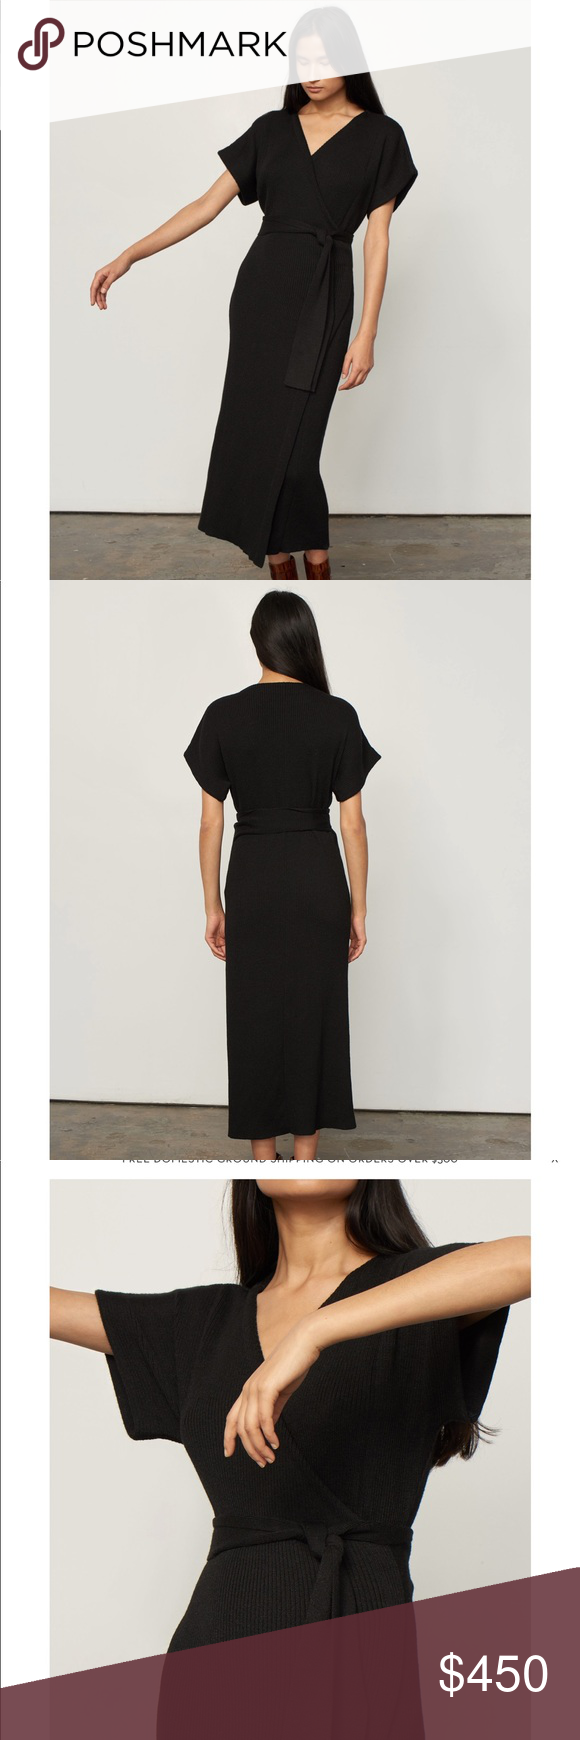 faa21e0c250 Mara Hoffman  Joss  Sweater Dress Perfect condition. Worn only once. I may  even still have the tags somewhere. Still selling for full price on Mars  Hoffman ...